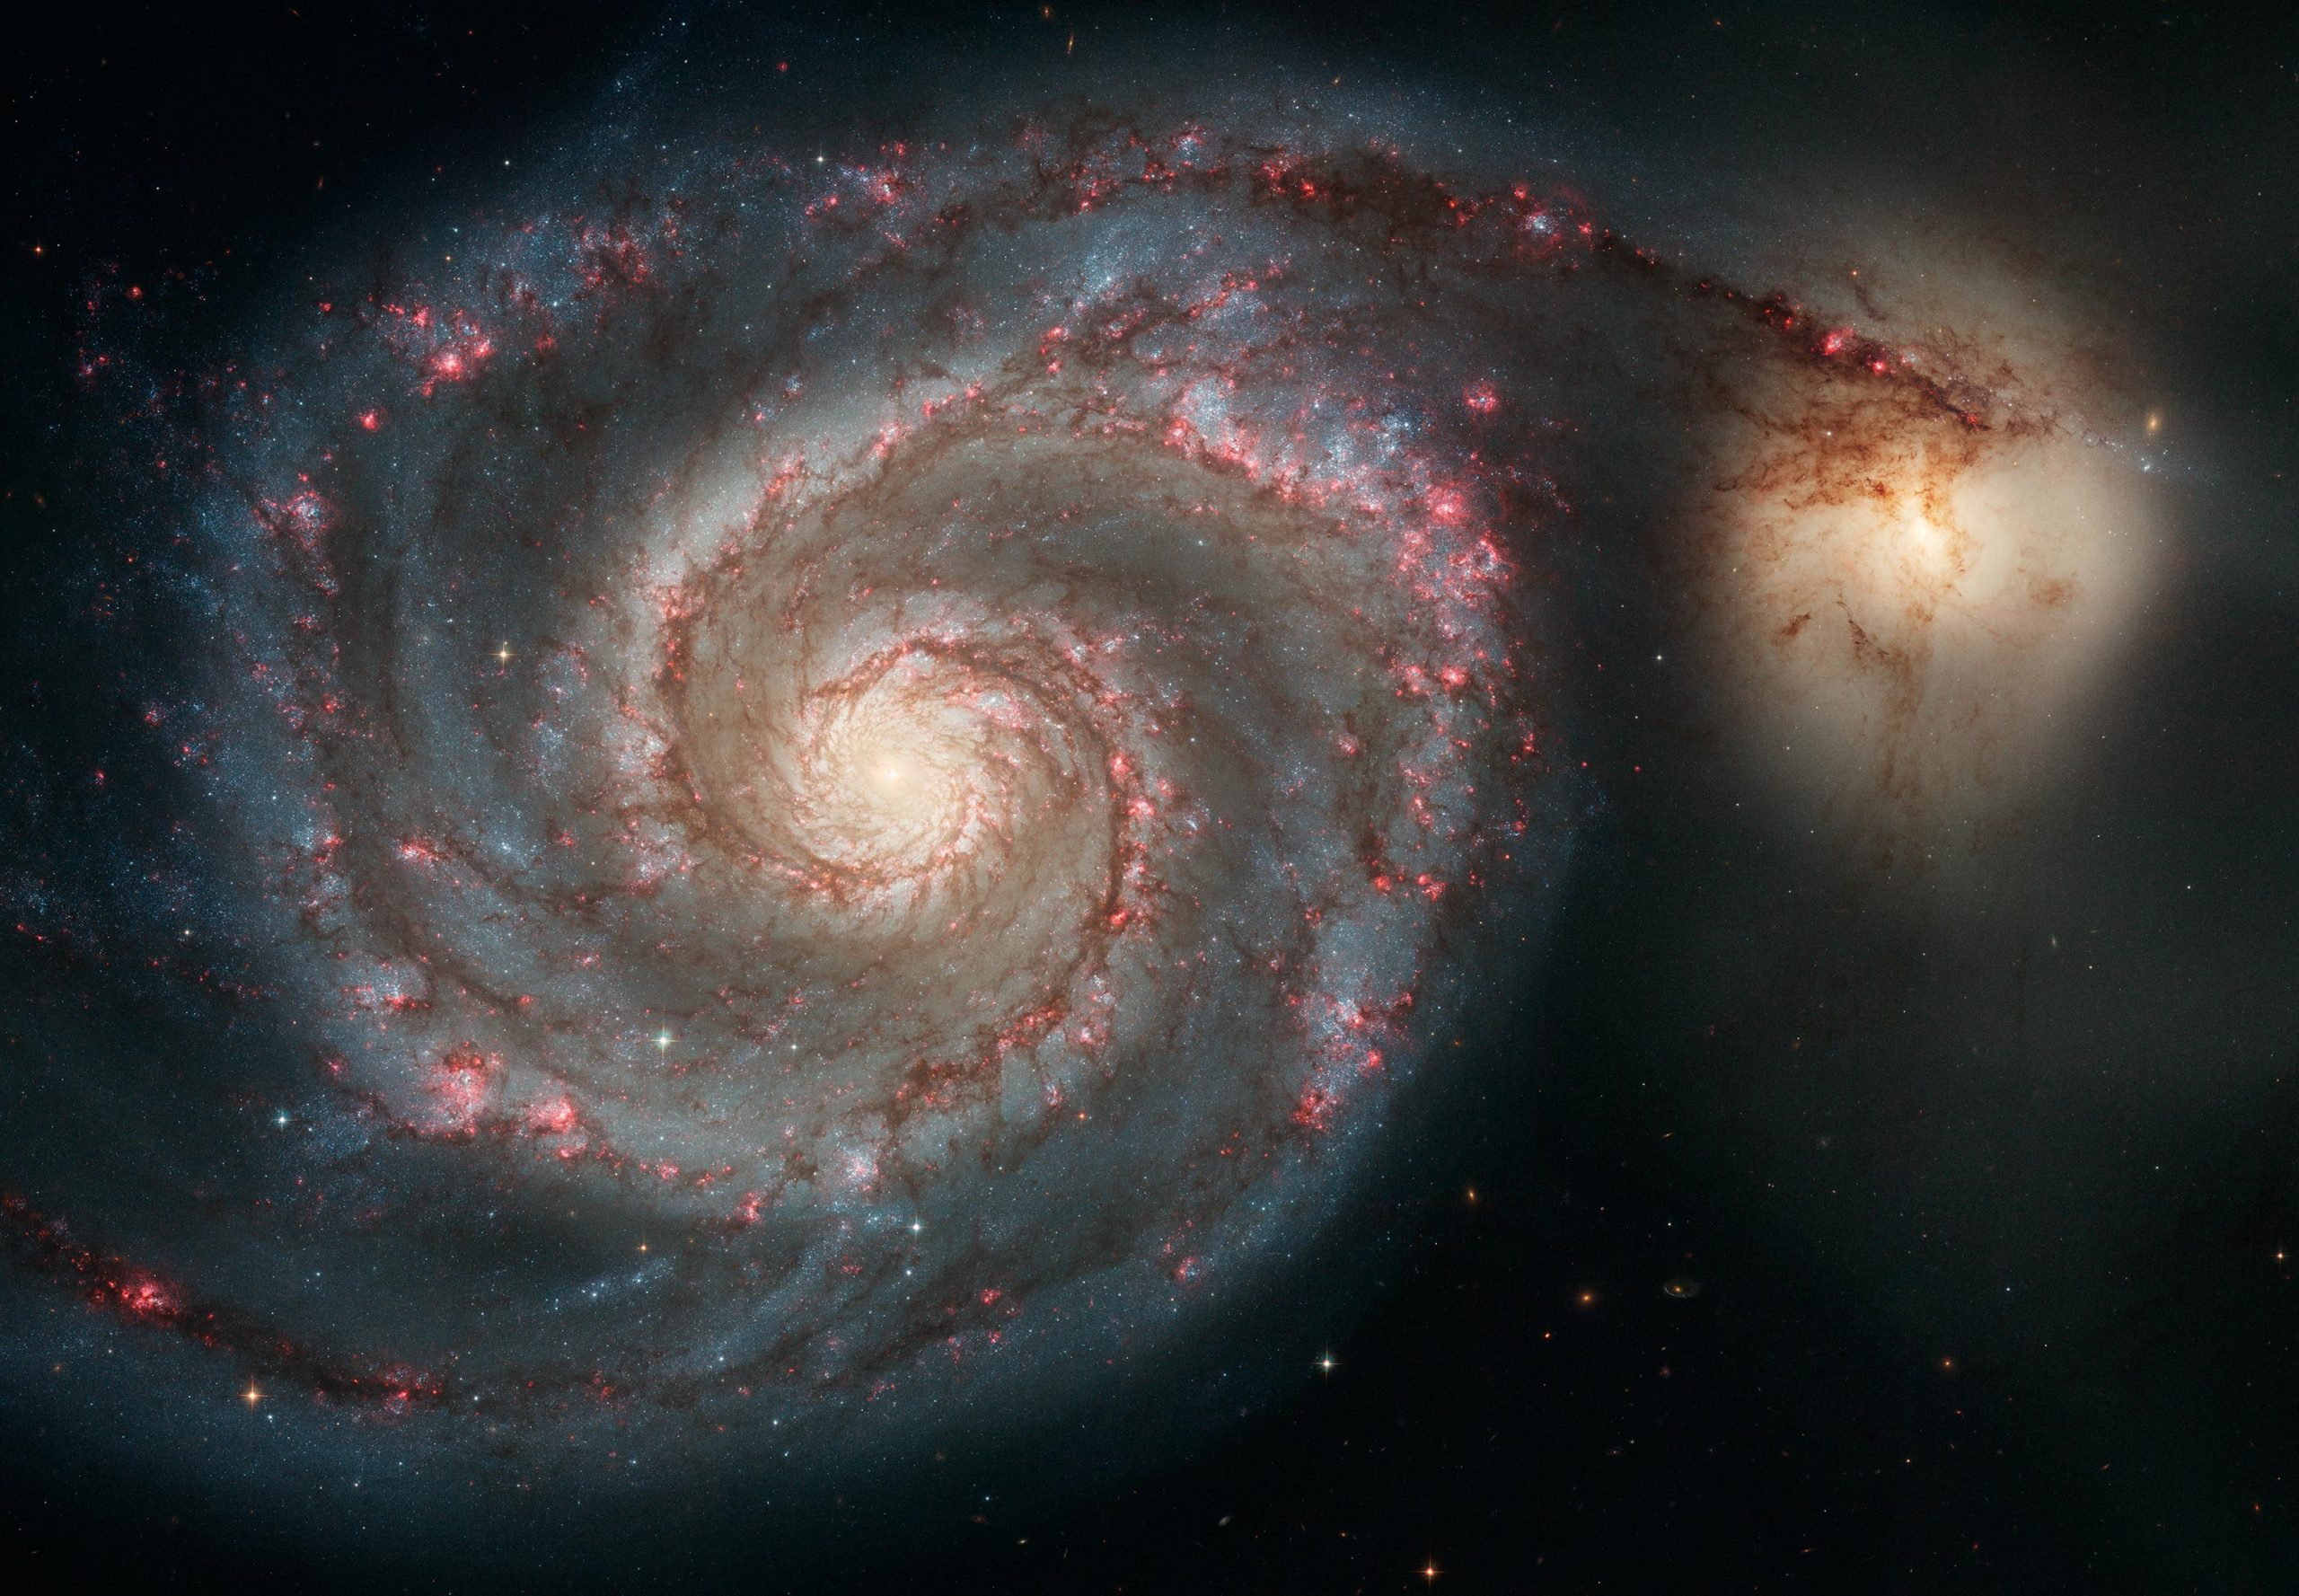 A Sparkling Stretched Spiral and Stunning Out-of-This-World Galaxies Imaged by Hubble - SciTechDaily